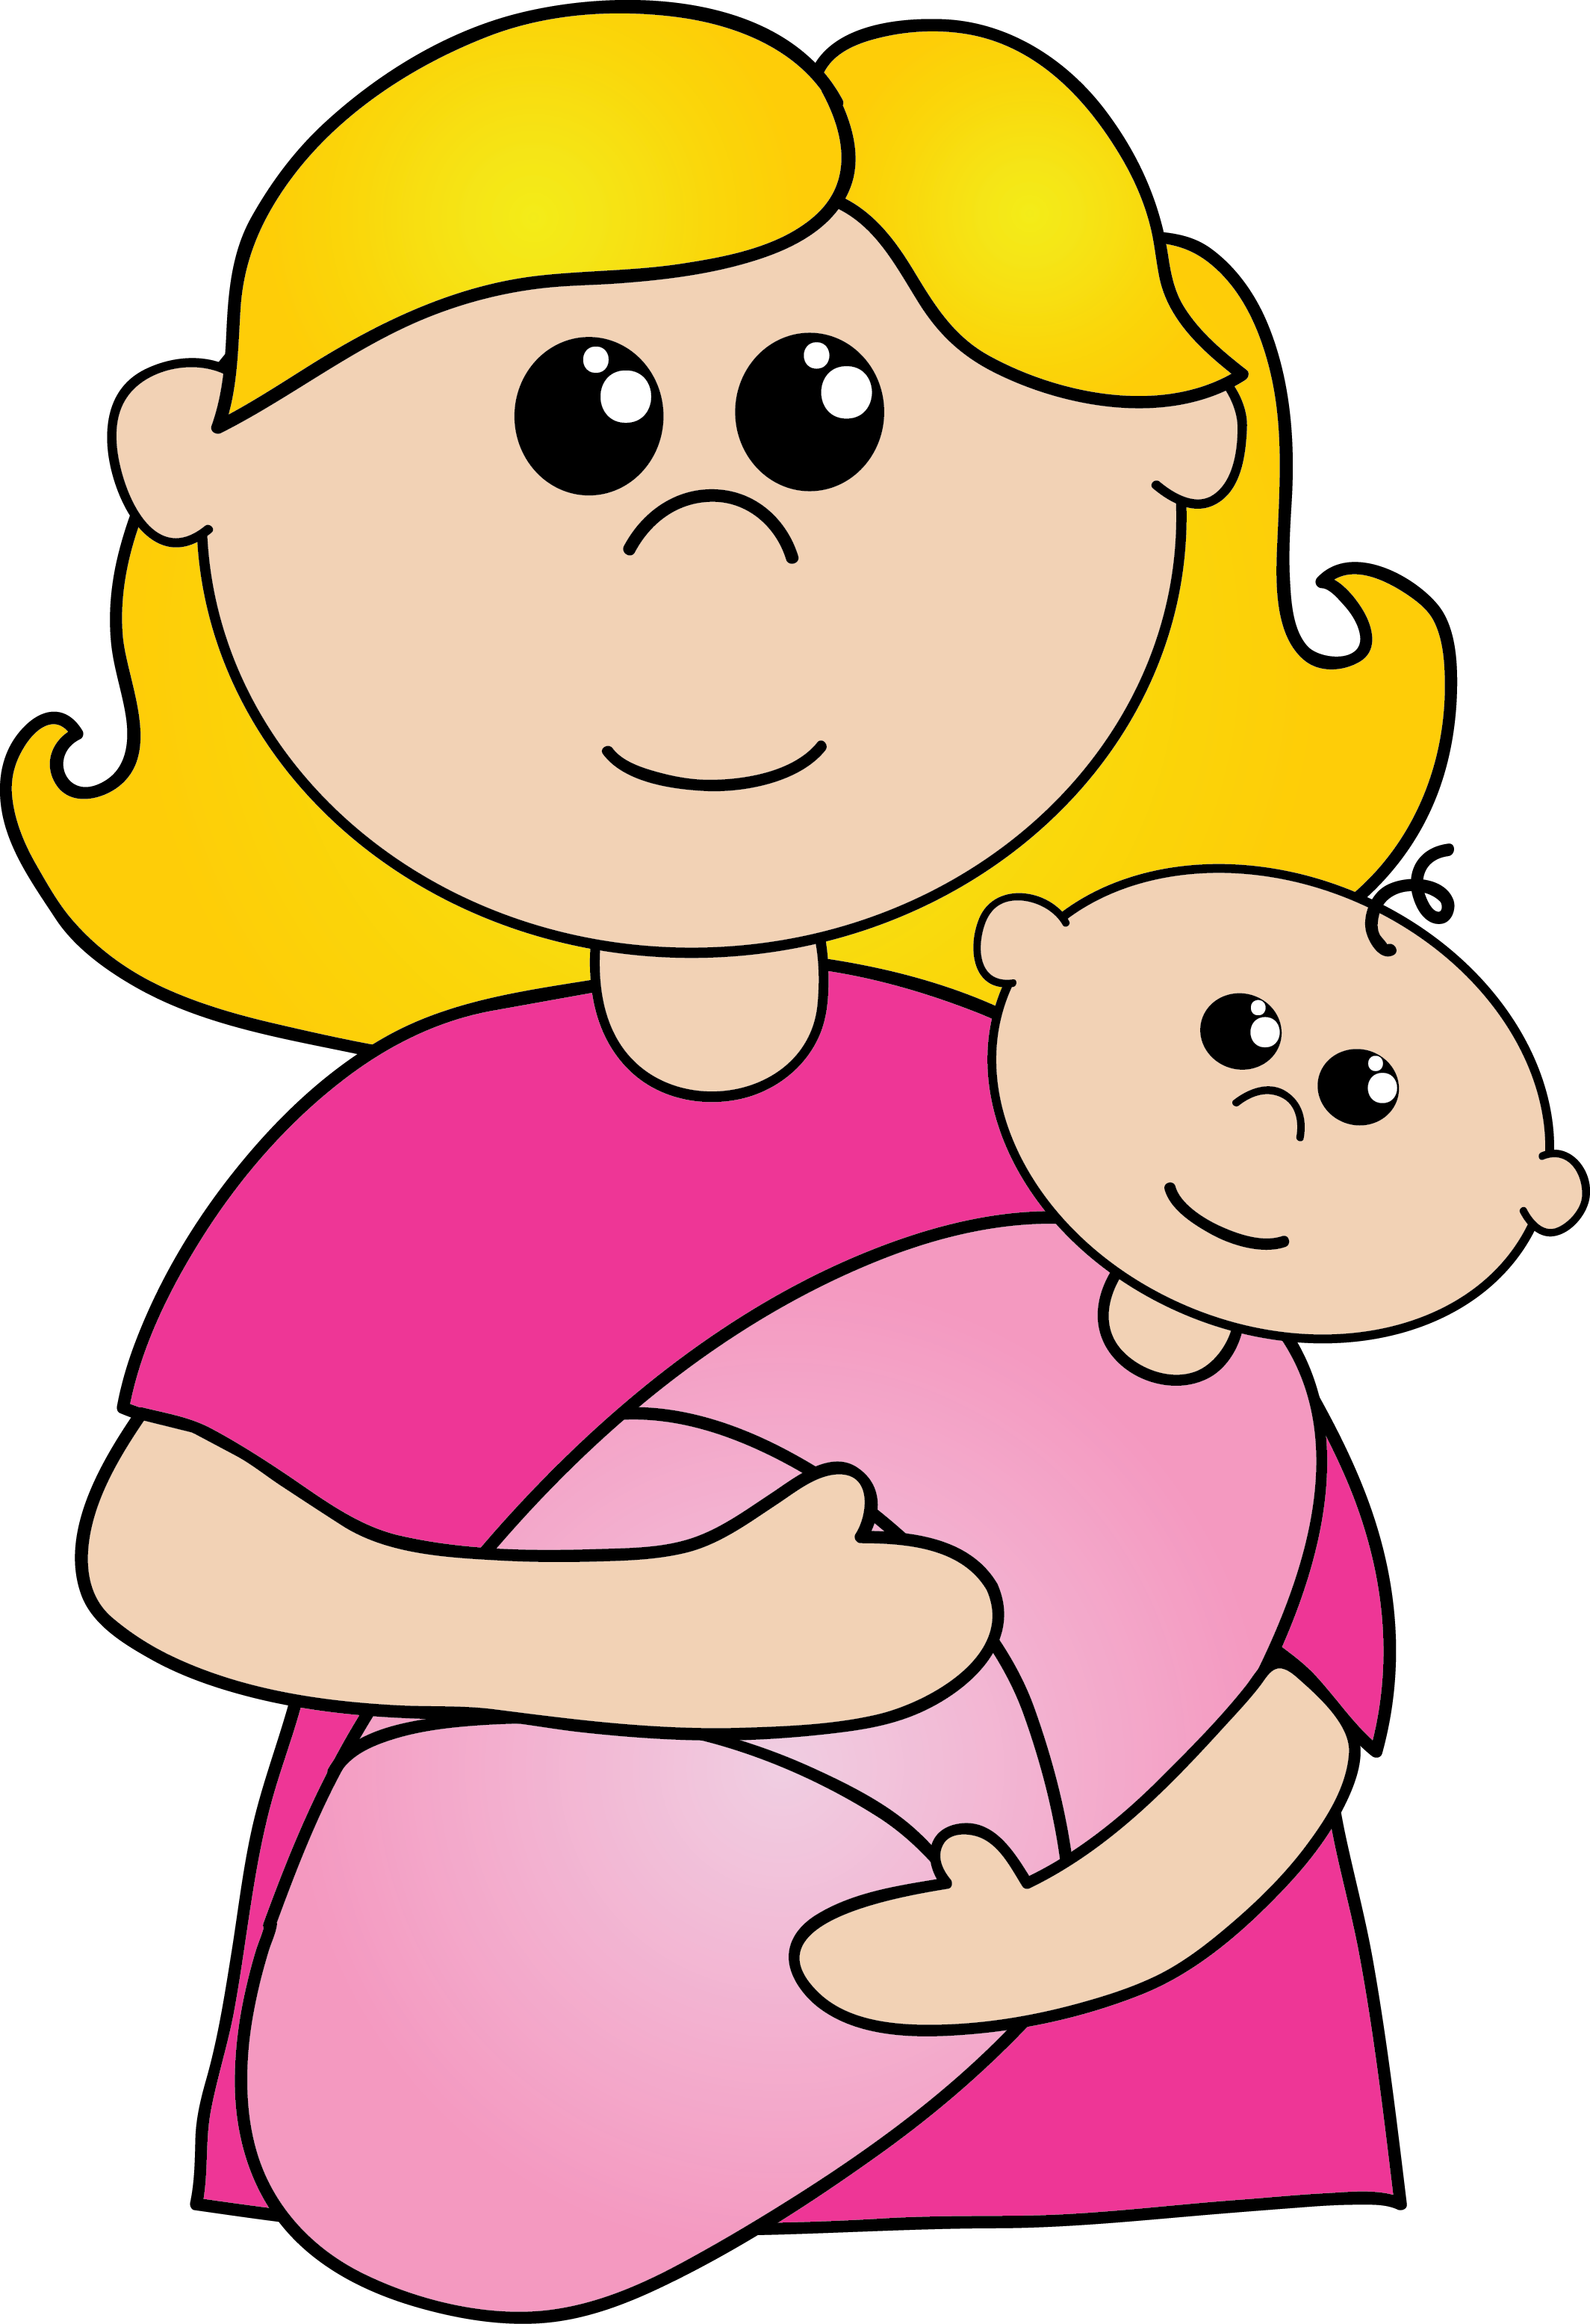 Clipart of a mom png transparent download Free Mom Cliparts, Download Free Clip Art, Free Clip Art on Clipart ... png transparent download